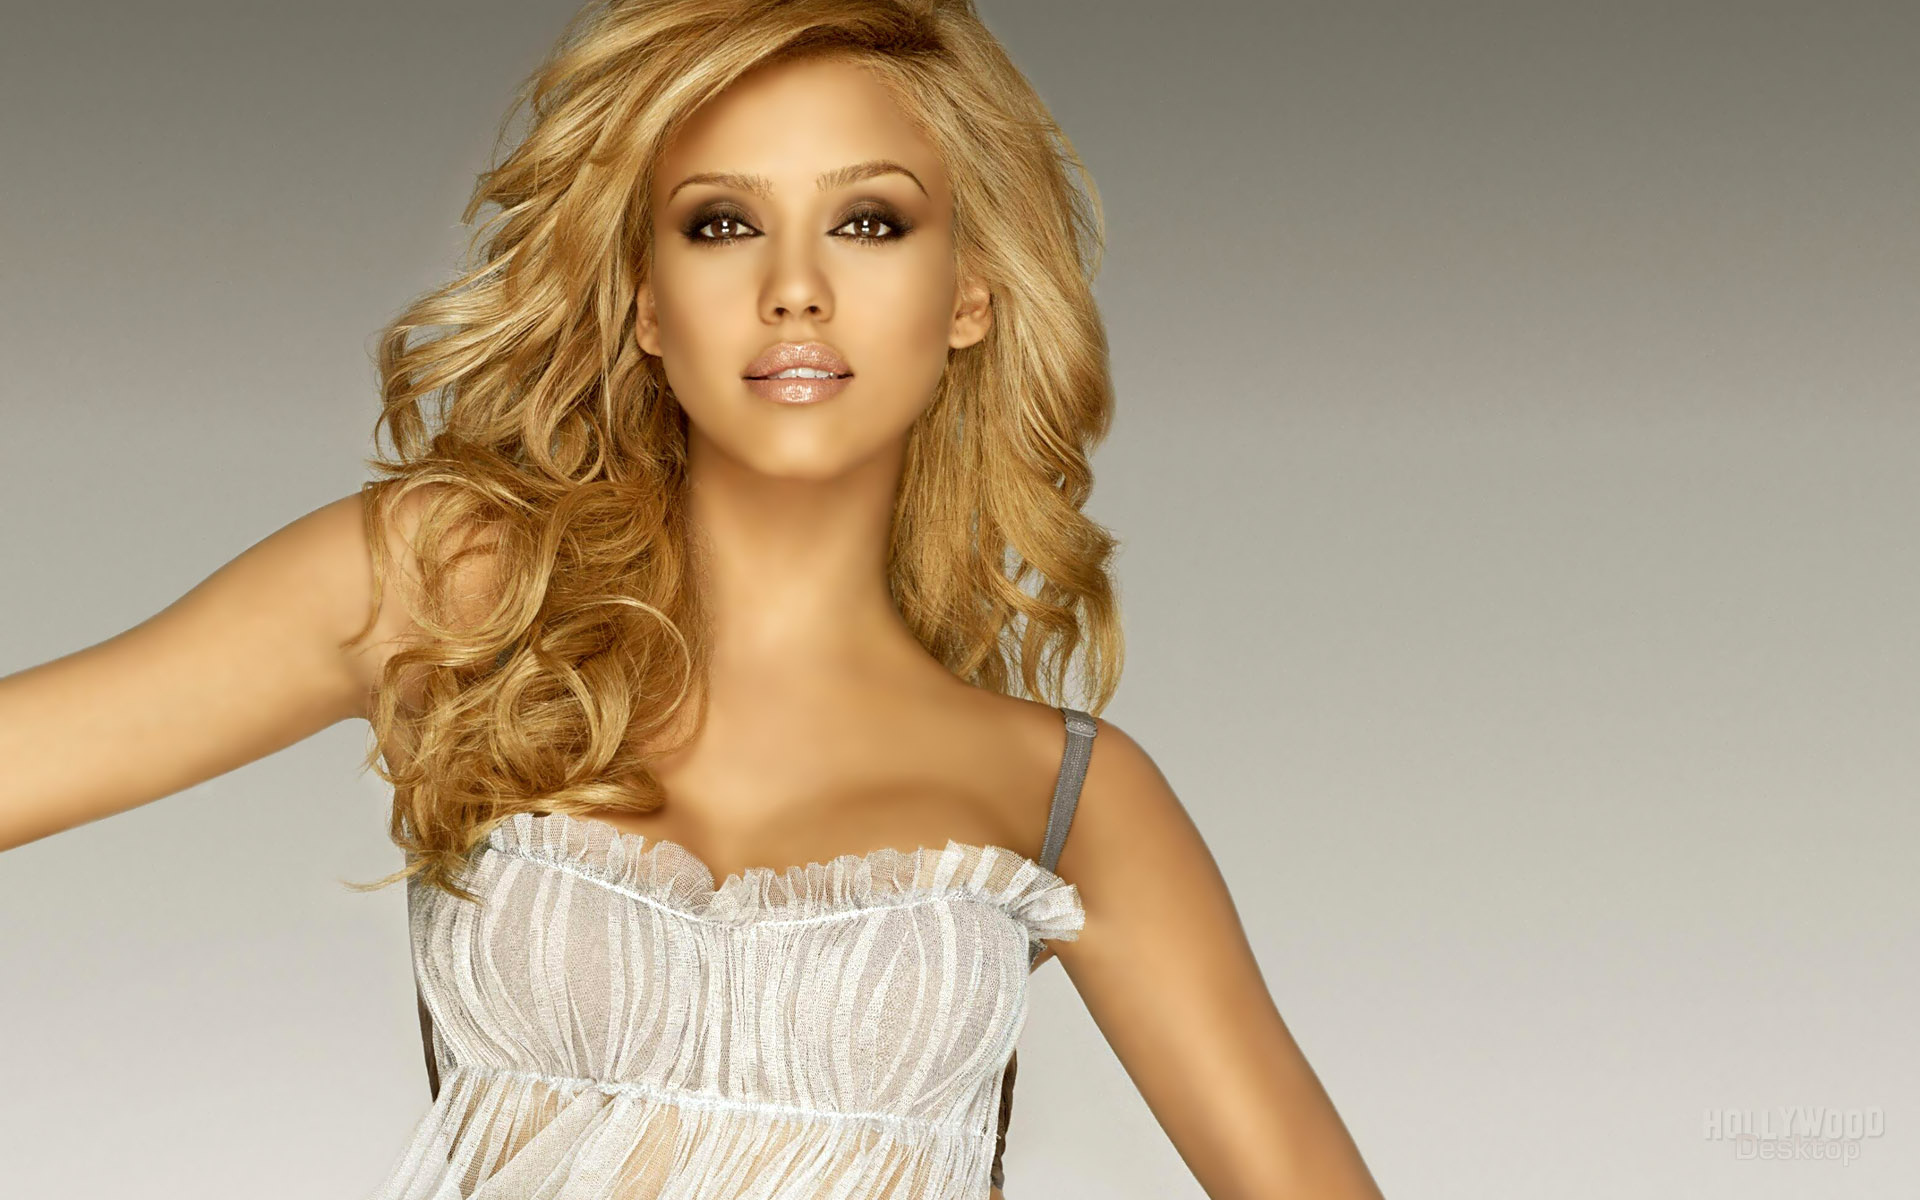 Jessica Alba Hollywood Actor Hd Wallpapers - All Hd Wallpapers-5529